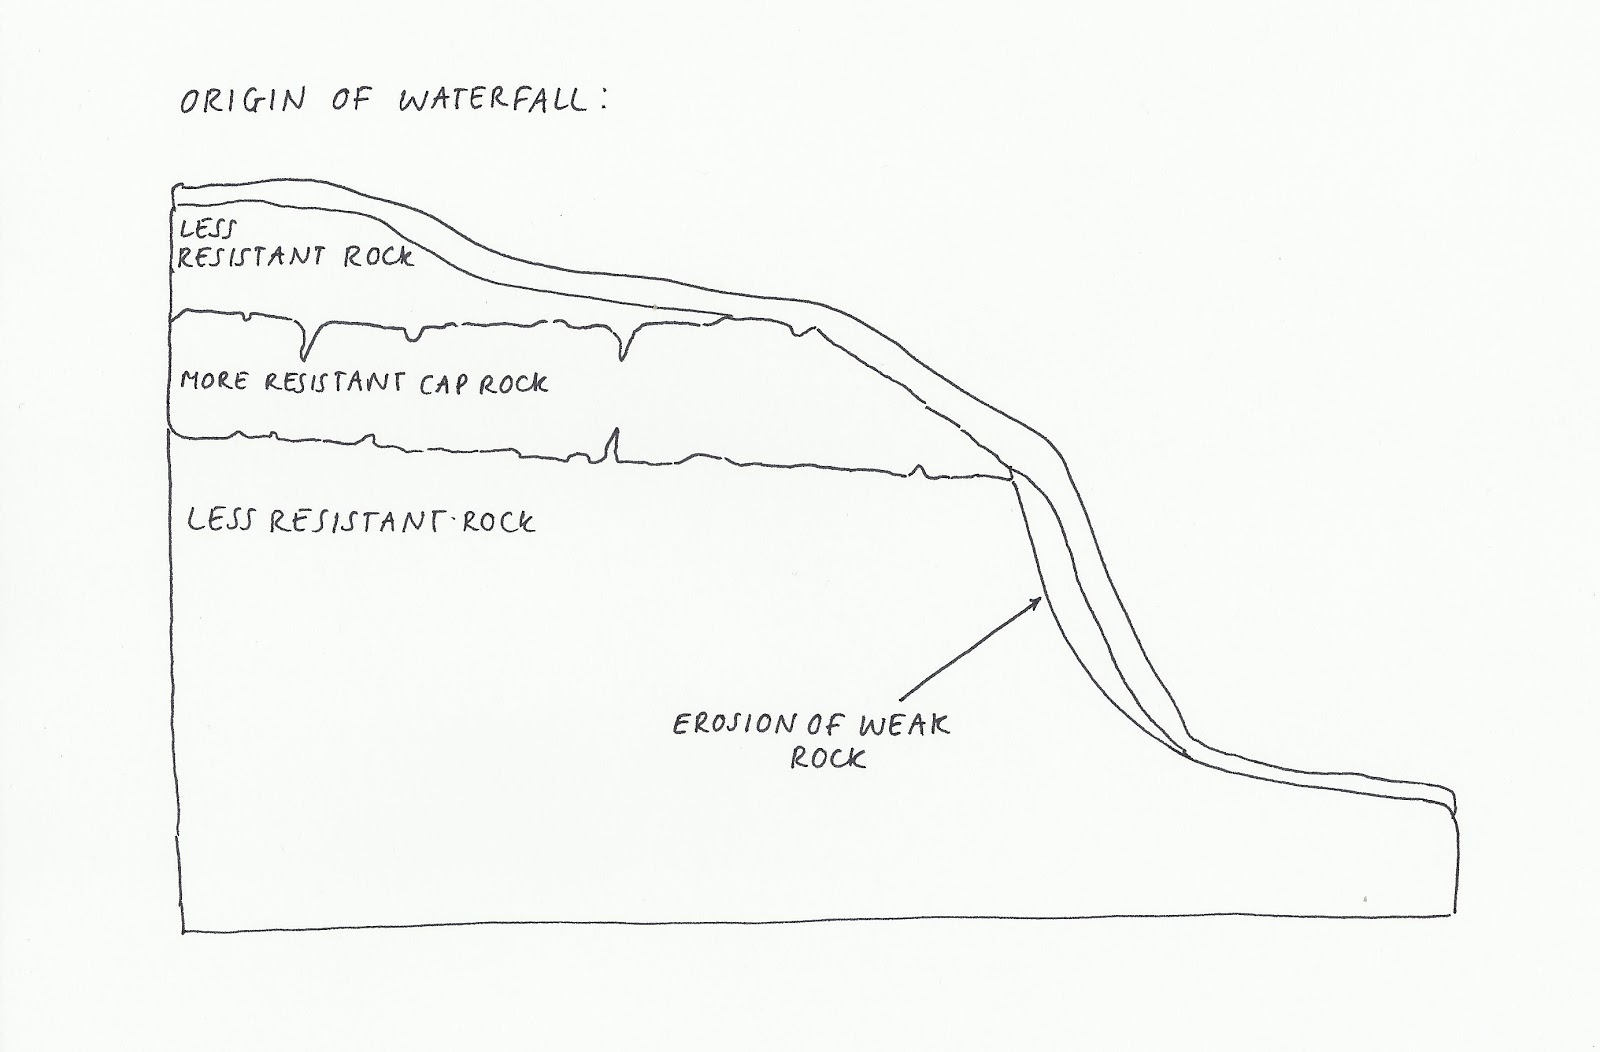 medium resolution of formation of a waterfall